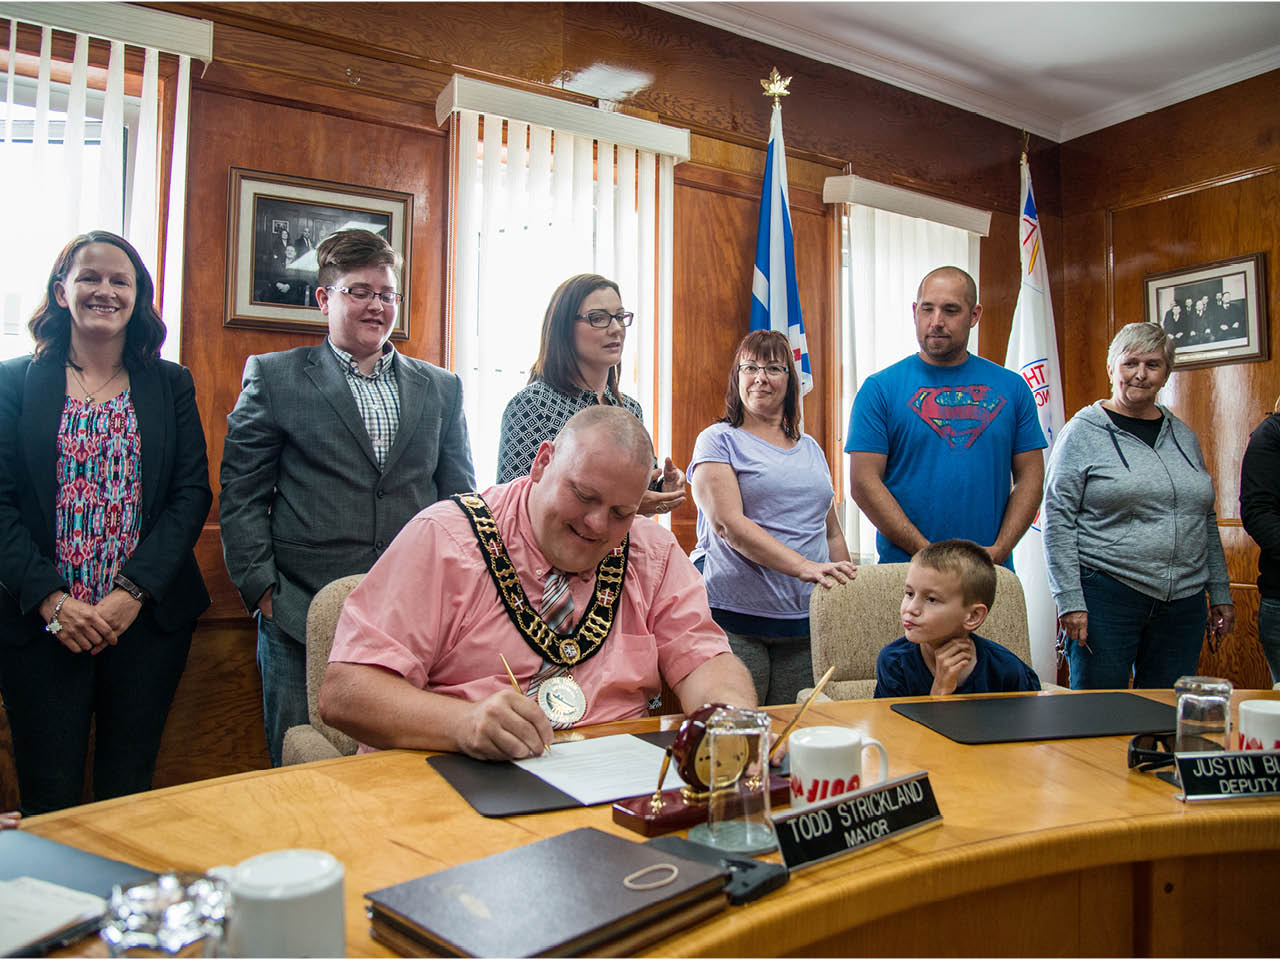 Todd Strickland - The Mayor of Channel-Port aux Basques